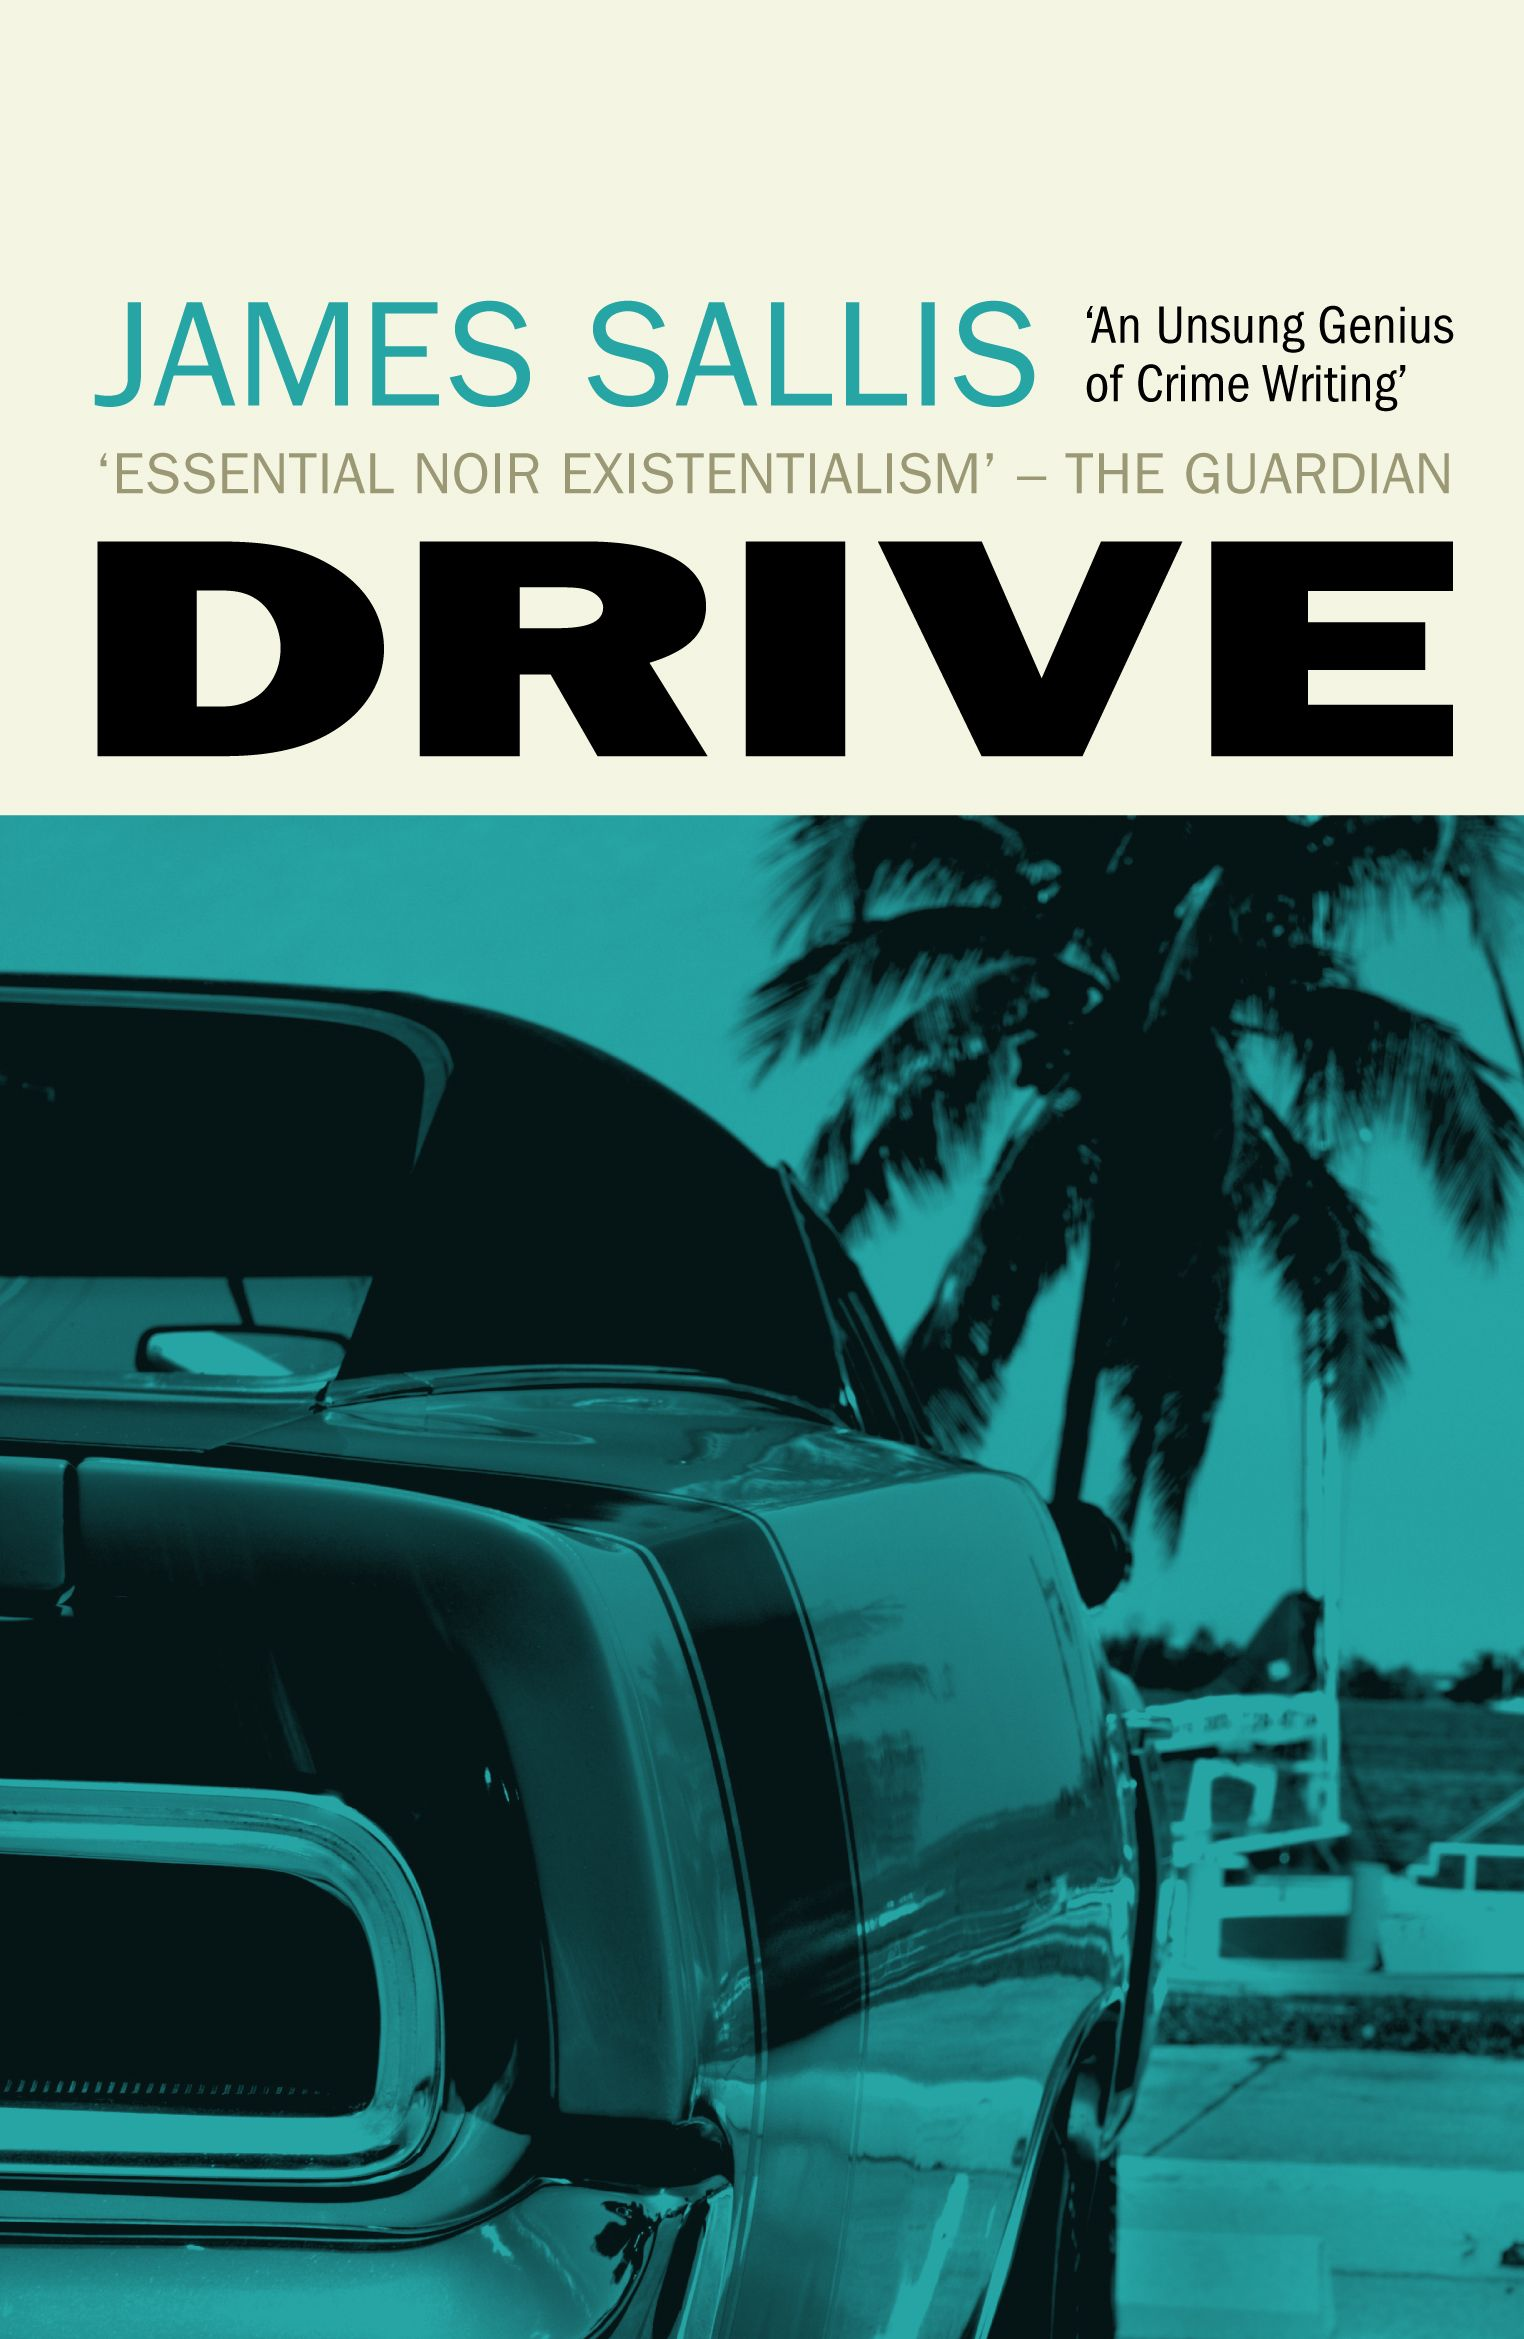 A Nameless Stunt Driver Picks Up Night Work As A Getaway Driver In This Pulp Classic With Images James Author Driving Crime Books